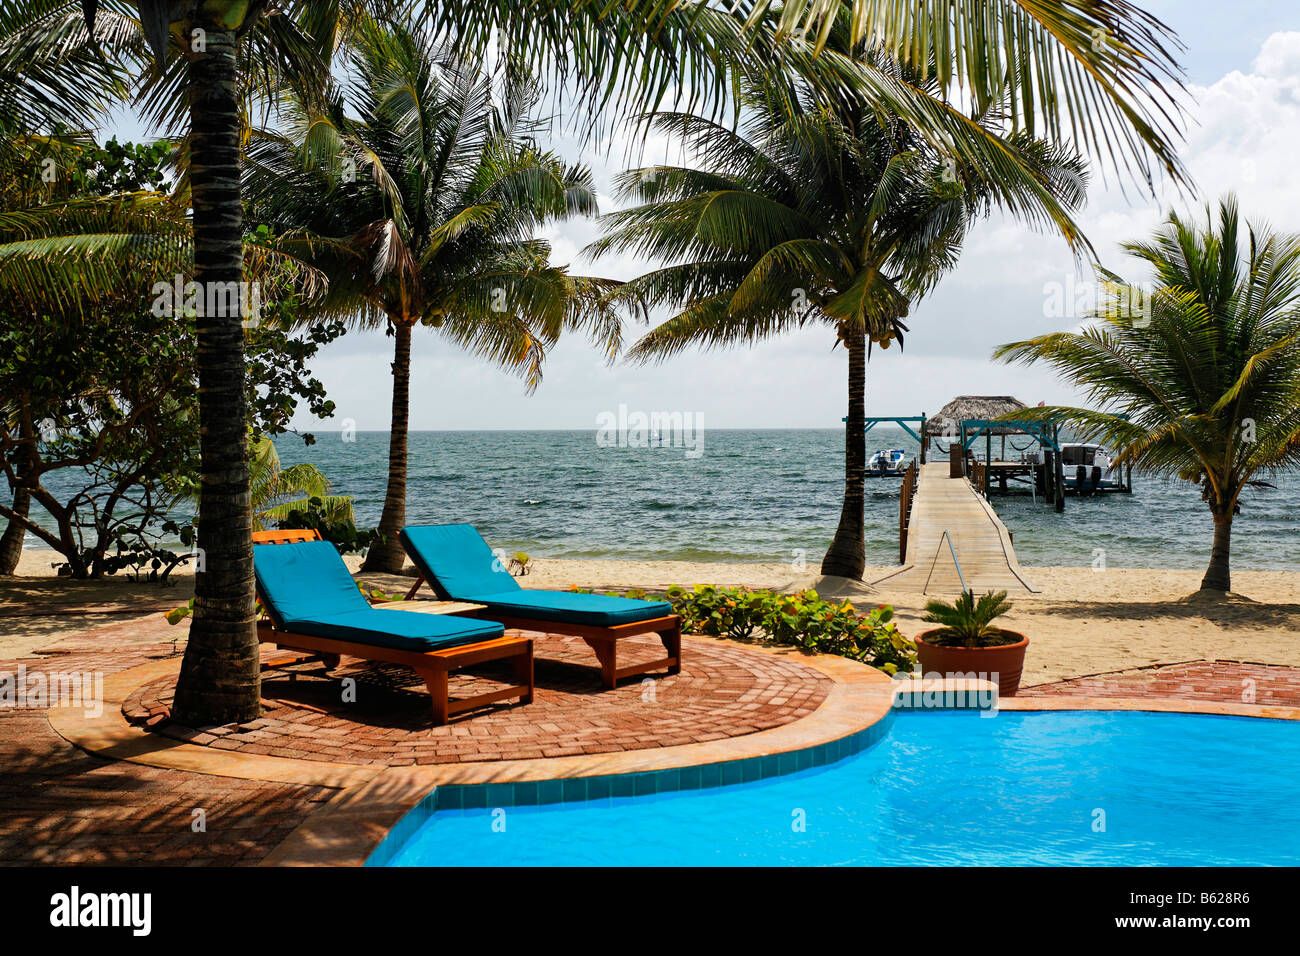 Deckchairs, swimming pool, beach and wharf, Hamanasi Hotel, Hopkins, Dangria, Belize, Central America, Caribbean - Stock Image